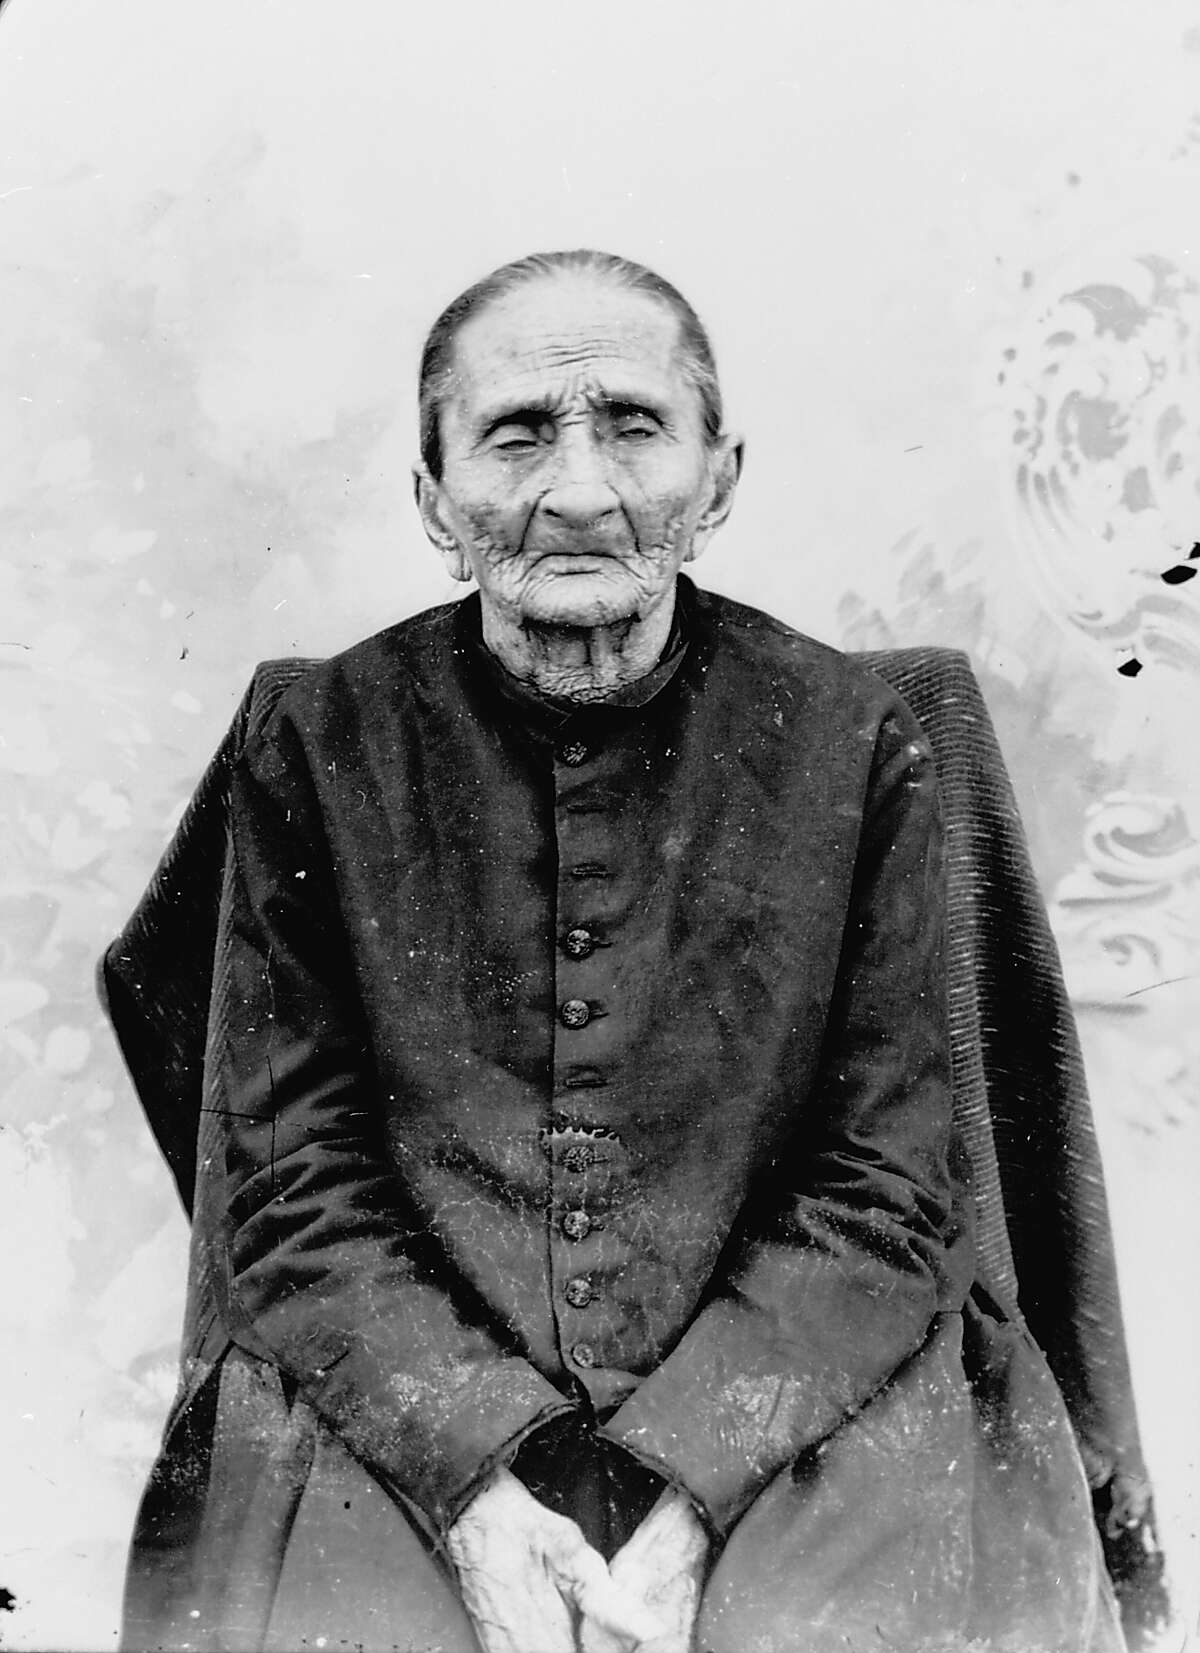 Madam Candelaria (Andrea Castañón Villanueva, 1785-1899). c. 1887. Reputed survivor of the Battle of the Alamo shown at the age of 102 years old. She died at the age of 113 and was buried in San Fernando Cemetery in San Antonio.